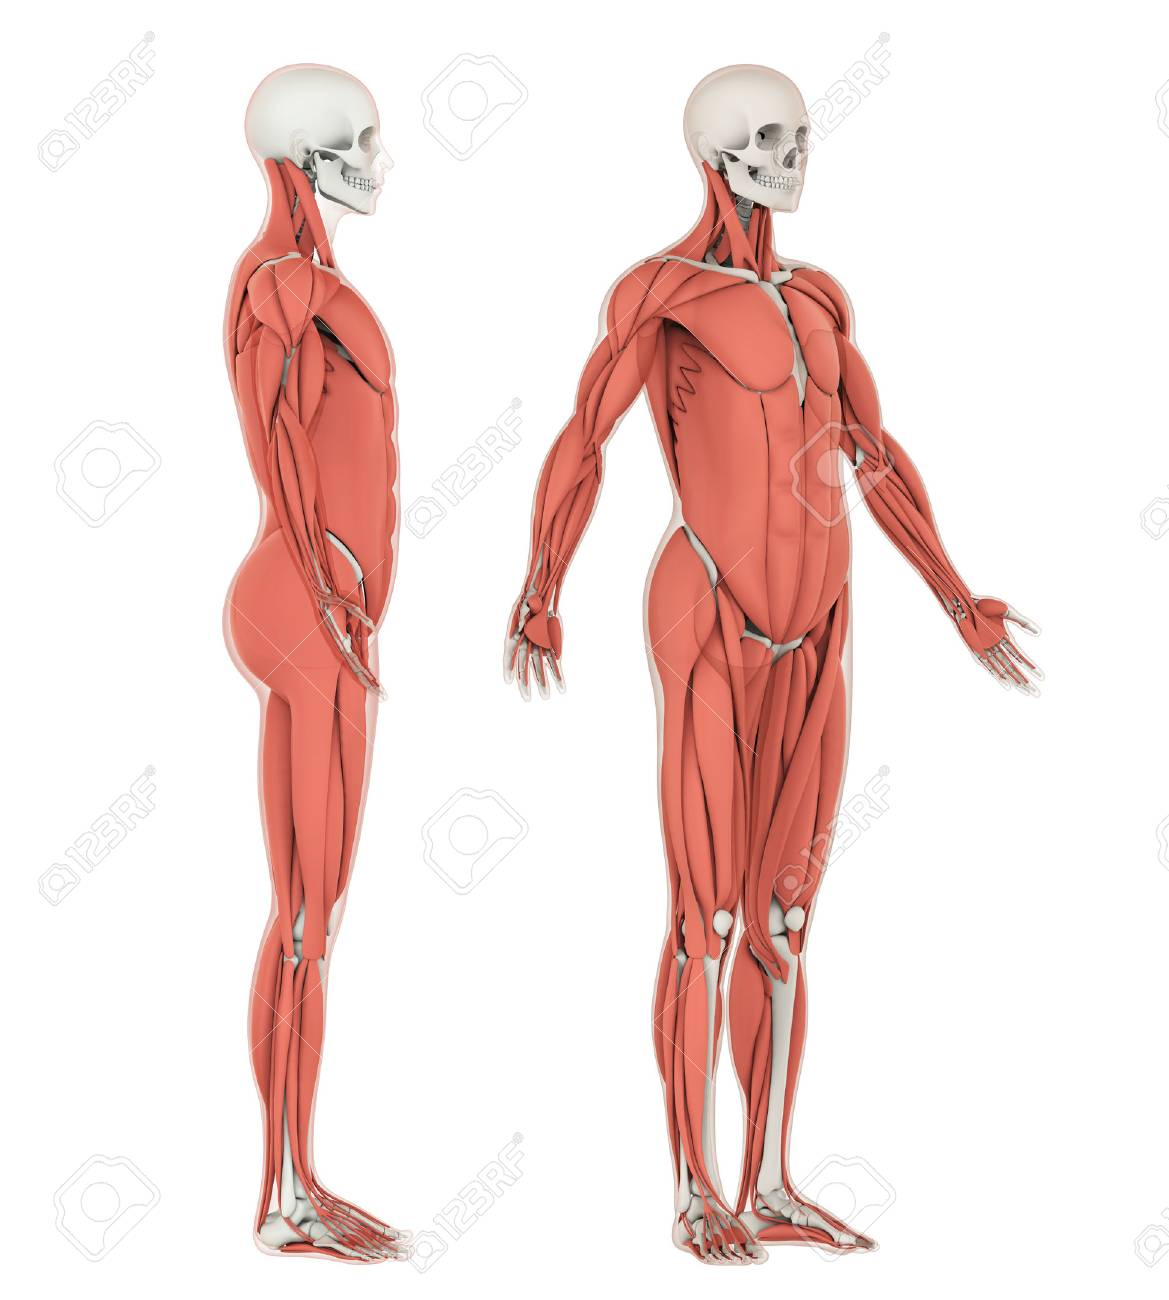 Human Skeleton And Muscle Anatomy Isolated Stock Photo, Picture And ...